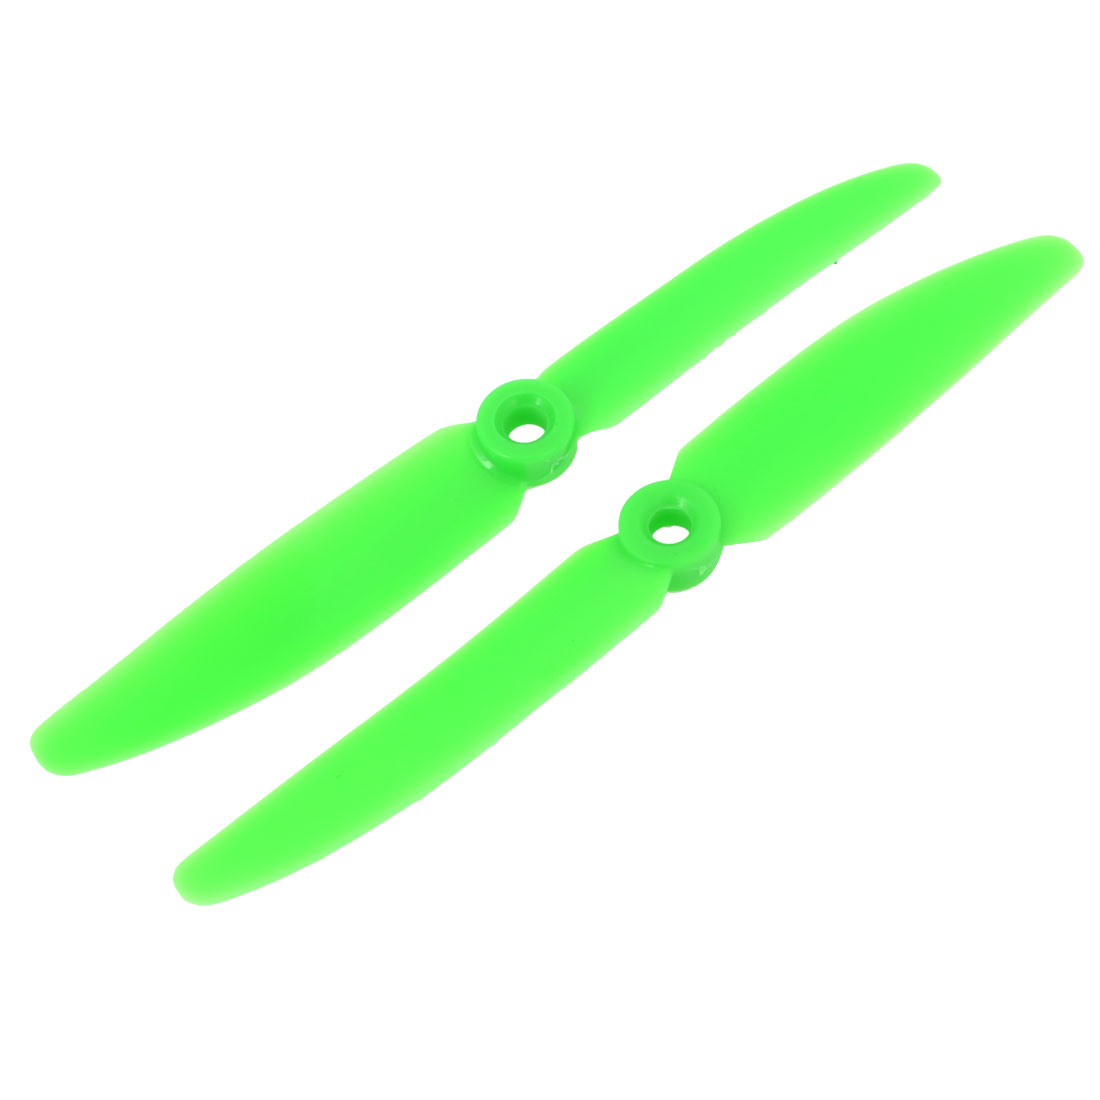 Pair Double Vanes 5x3 Green Plastic CW CCW RC Model Airplane Prop Propeller